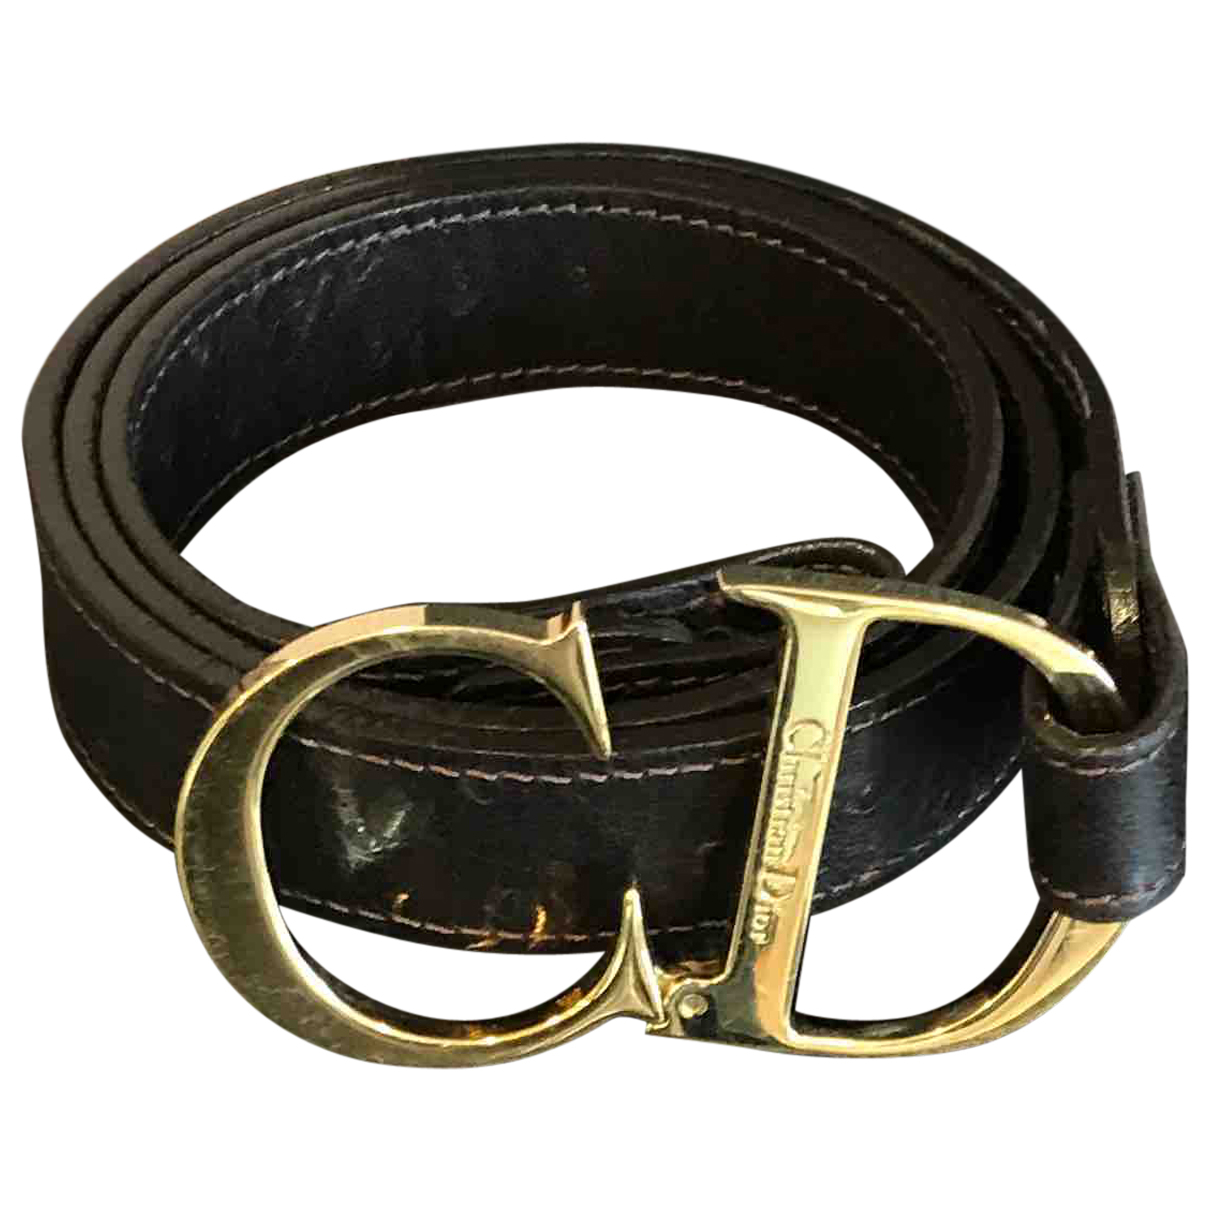 Dior N Brown Leather belt for Women 37 Inches